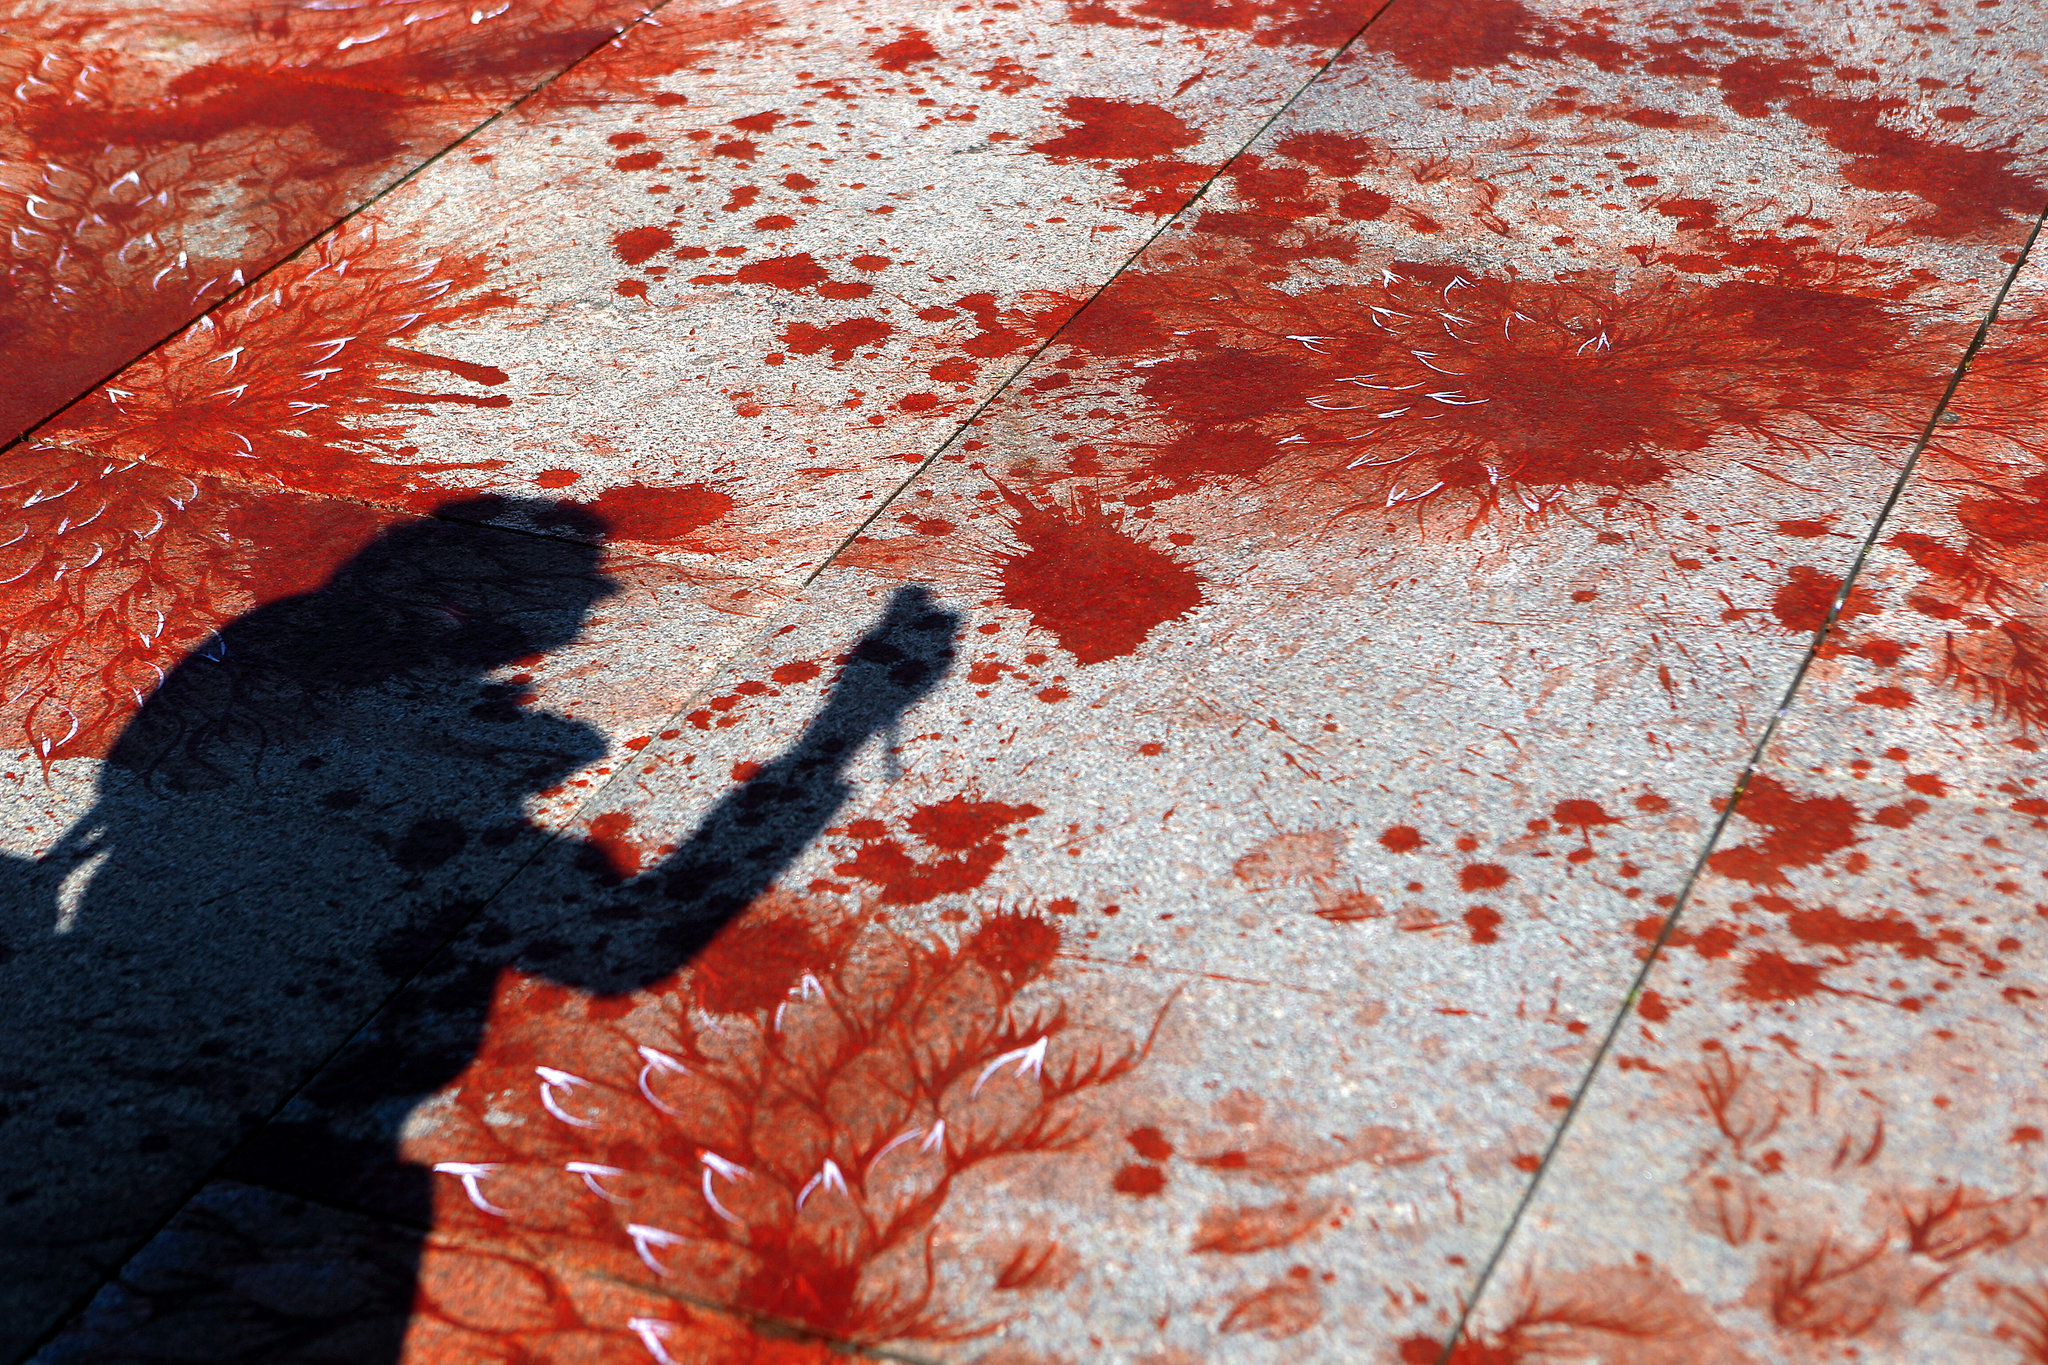 Imran Qureshi – 'And They Still Seek the Trace of Blood'